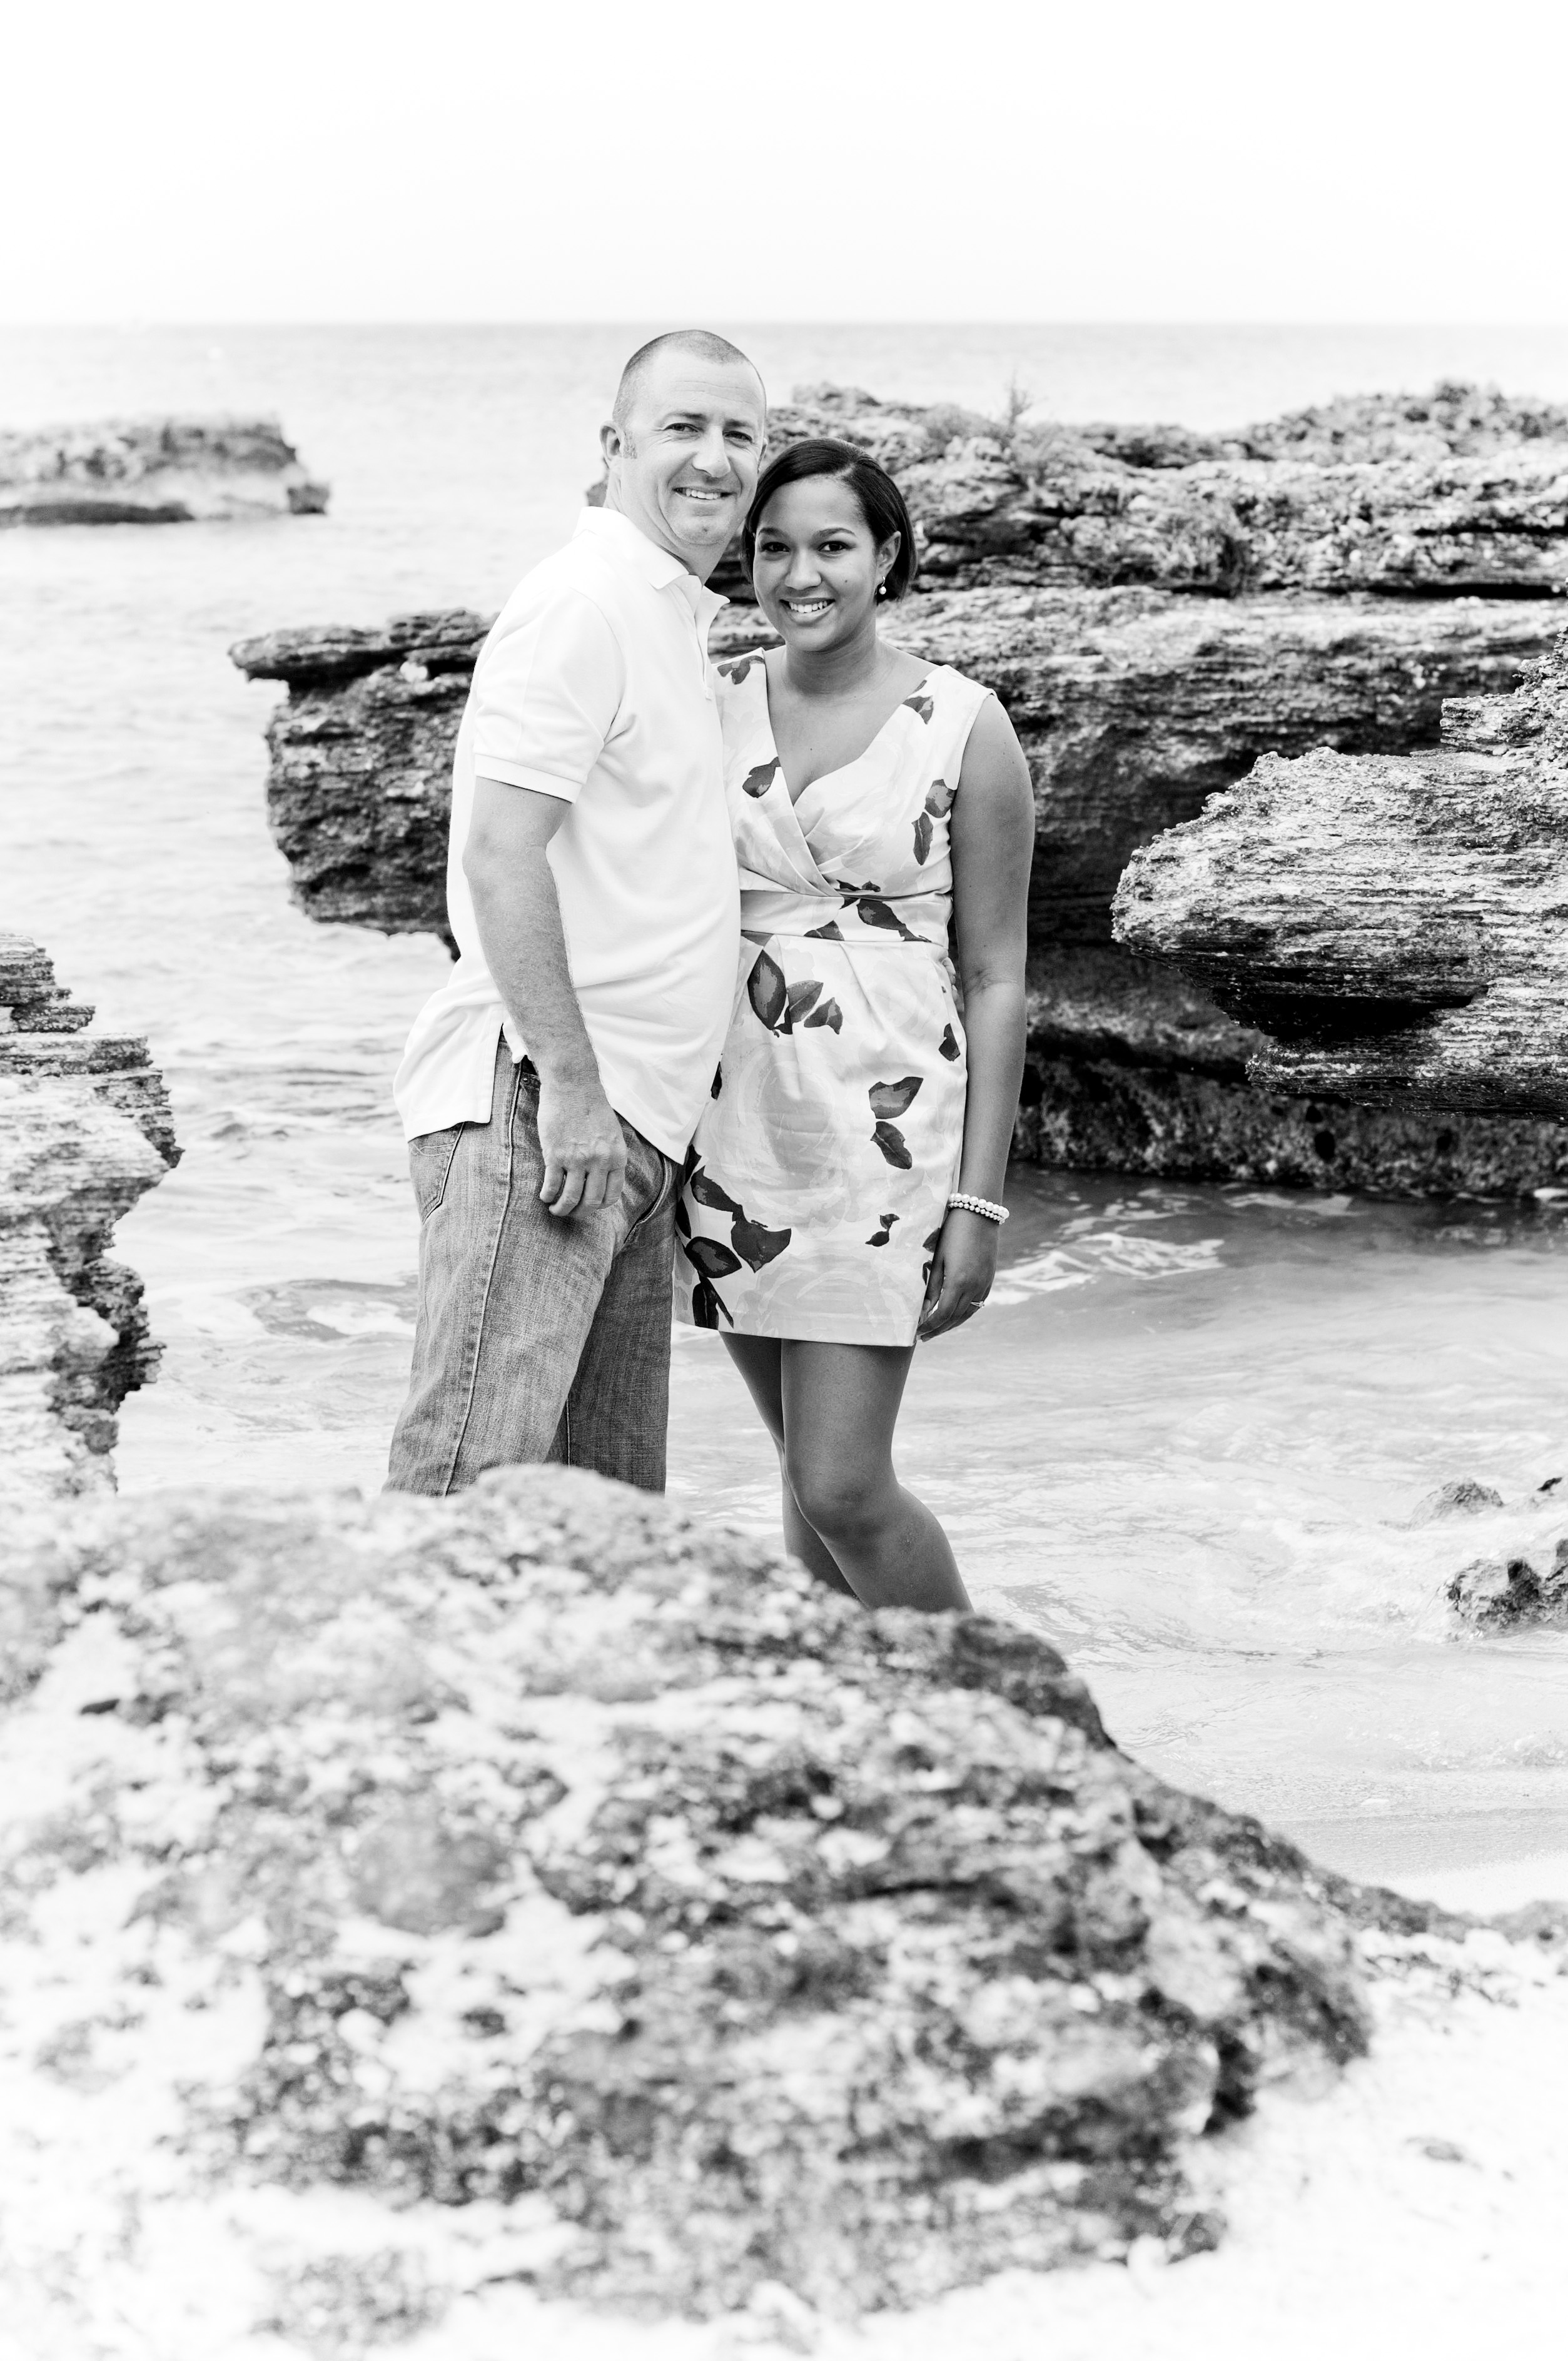 Erika Walton and Steve Mazzei's Honeymoon Registry